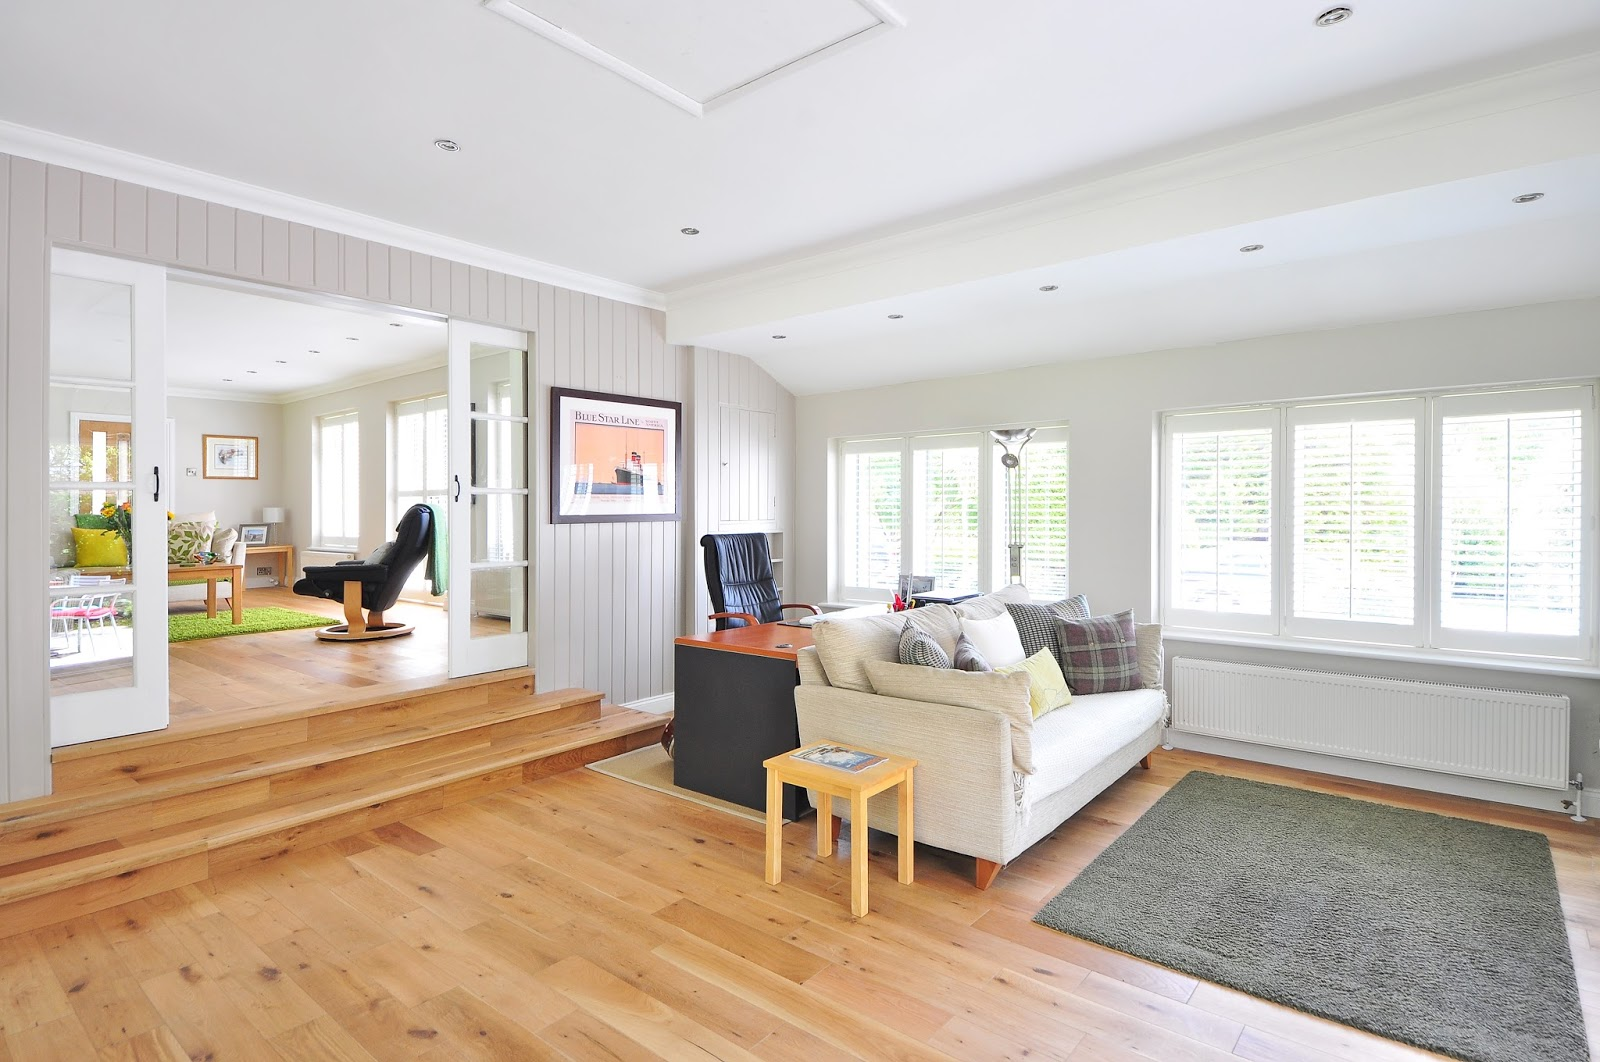 Attractive How To Buy Hardwood Floors Part - 3: Looking To Learn How To Buy Hardwood Floor For Your Home? Below Are Some  Tips To Help You Make An Educated Decision.